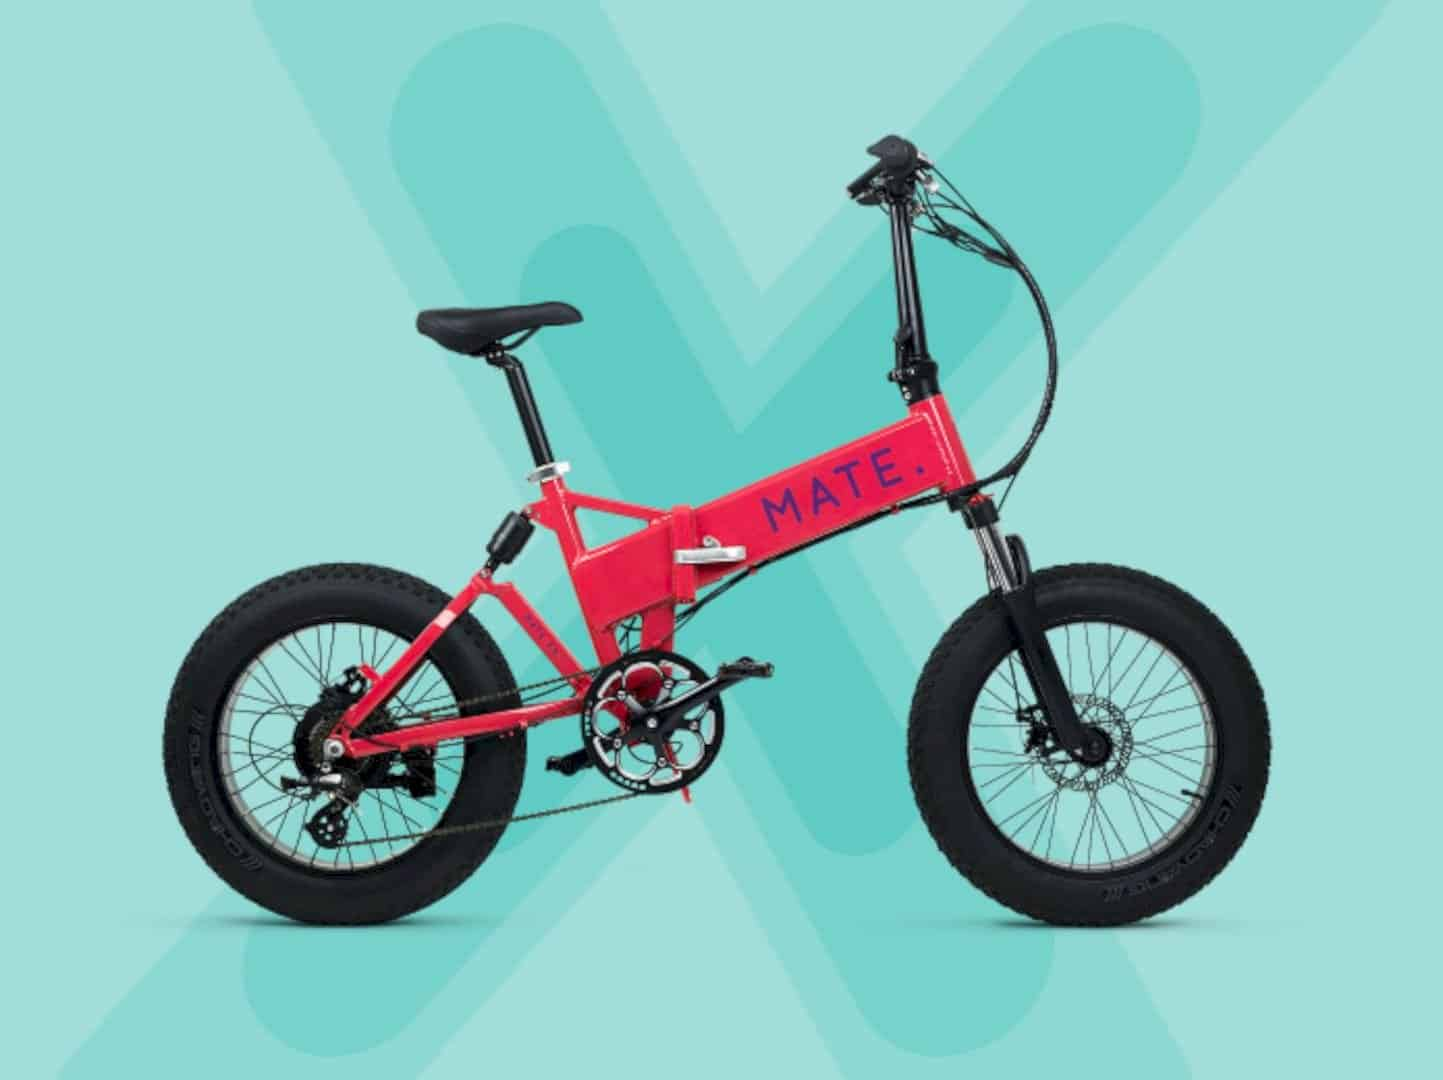 MATE X: The Most Affordable, Powerful Folding e-Bike on the Market